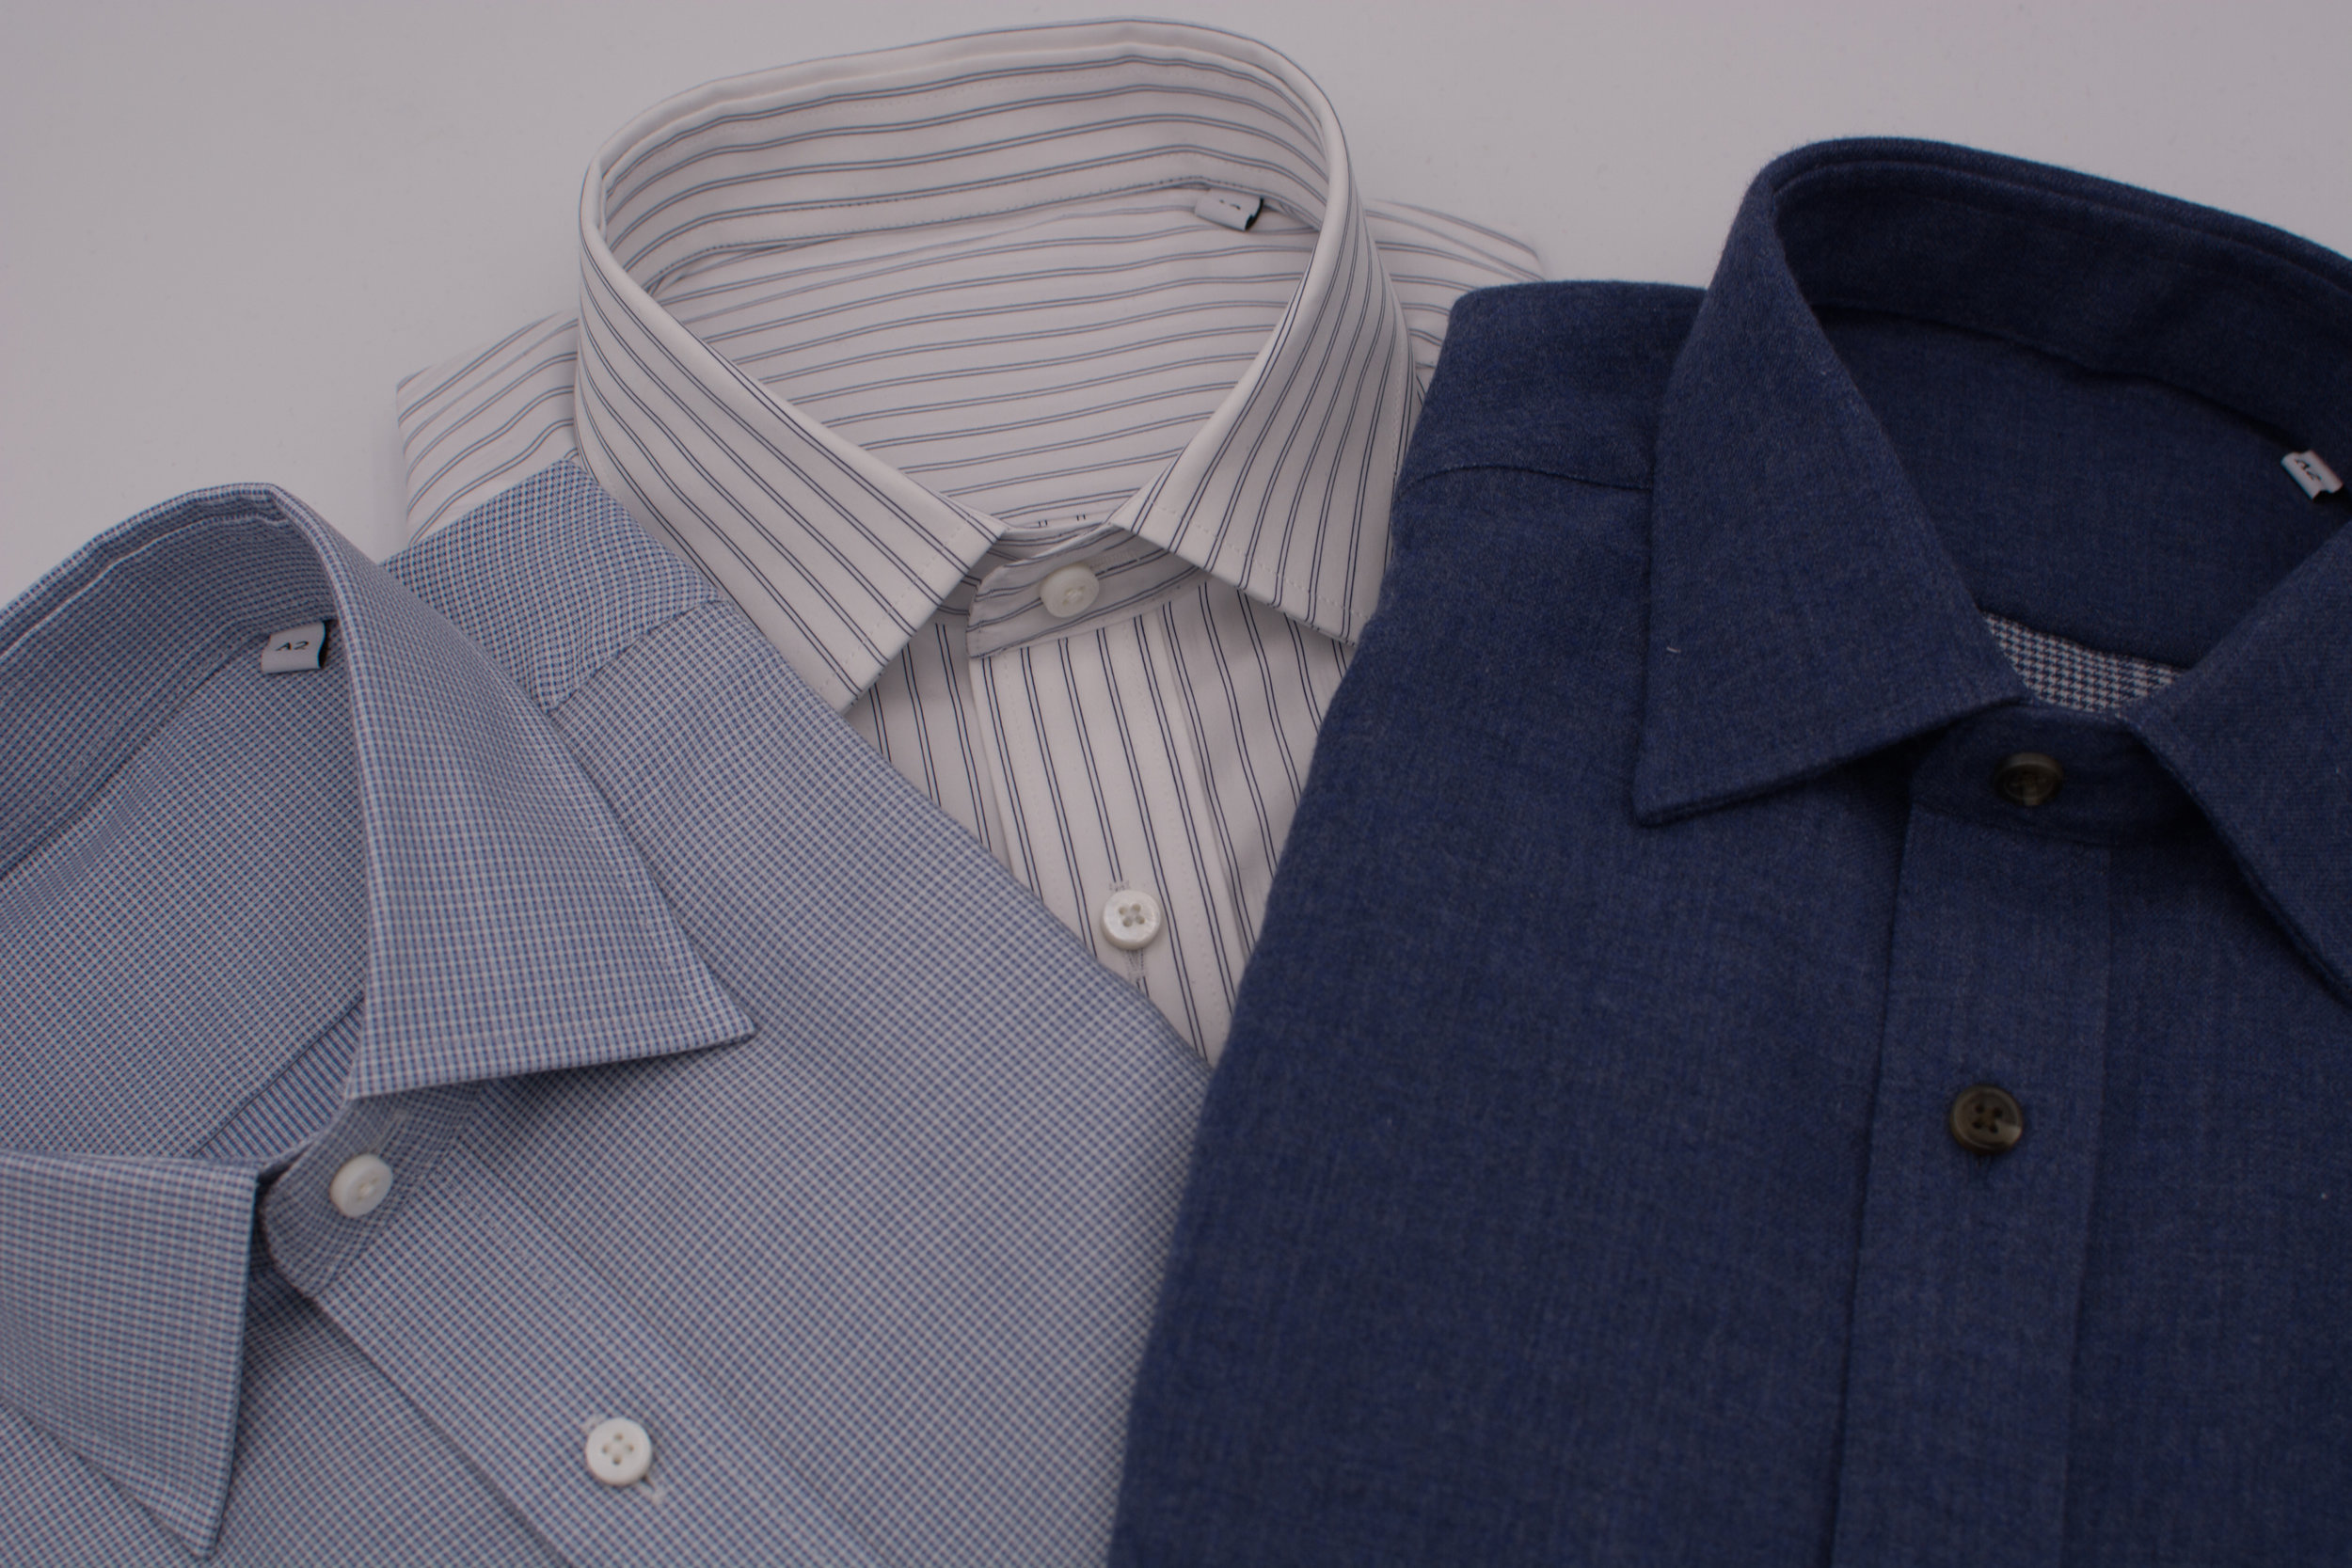 1. SLATE BLUE FLANNEL  A hearty brushed cotton in a unique blue-grey slate tone with brown horn buttons and a spread collar. Wear it under a tweed jacket as a dress shirt or on its own layered over a T-shirt as an overshirt. The soft touch feels great and pairs well with denim and khaki trousers.  2. BLUE HATCH WEAVE  A textured take on the blue dress shirt. Woven with overlapping white and blue threads in a dense check hatch weave, this dress shirt adds some variety to your wardrobe of light blue shirts. Pair it with classic suits in greys and blues, but also consider it as a compliment underneath sweaters. Features a semi-spread collar and thick mother of pearl buttons.  3. DOUBLE NAVY STRIPE  A white shirt that doubles up on a widely spaced pinstripe. In a broadcloth weight that's perfect for business to business casual dress. Works great with ancient madder and geometric neckties and even with wide-striped ties or knit ties. With a raised placket and semi-spread collar, it's a classic work shirt.